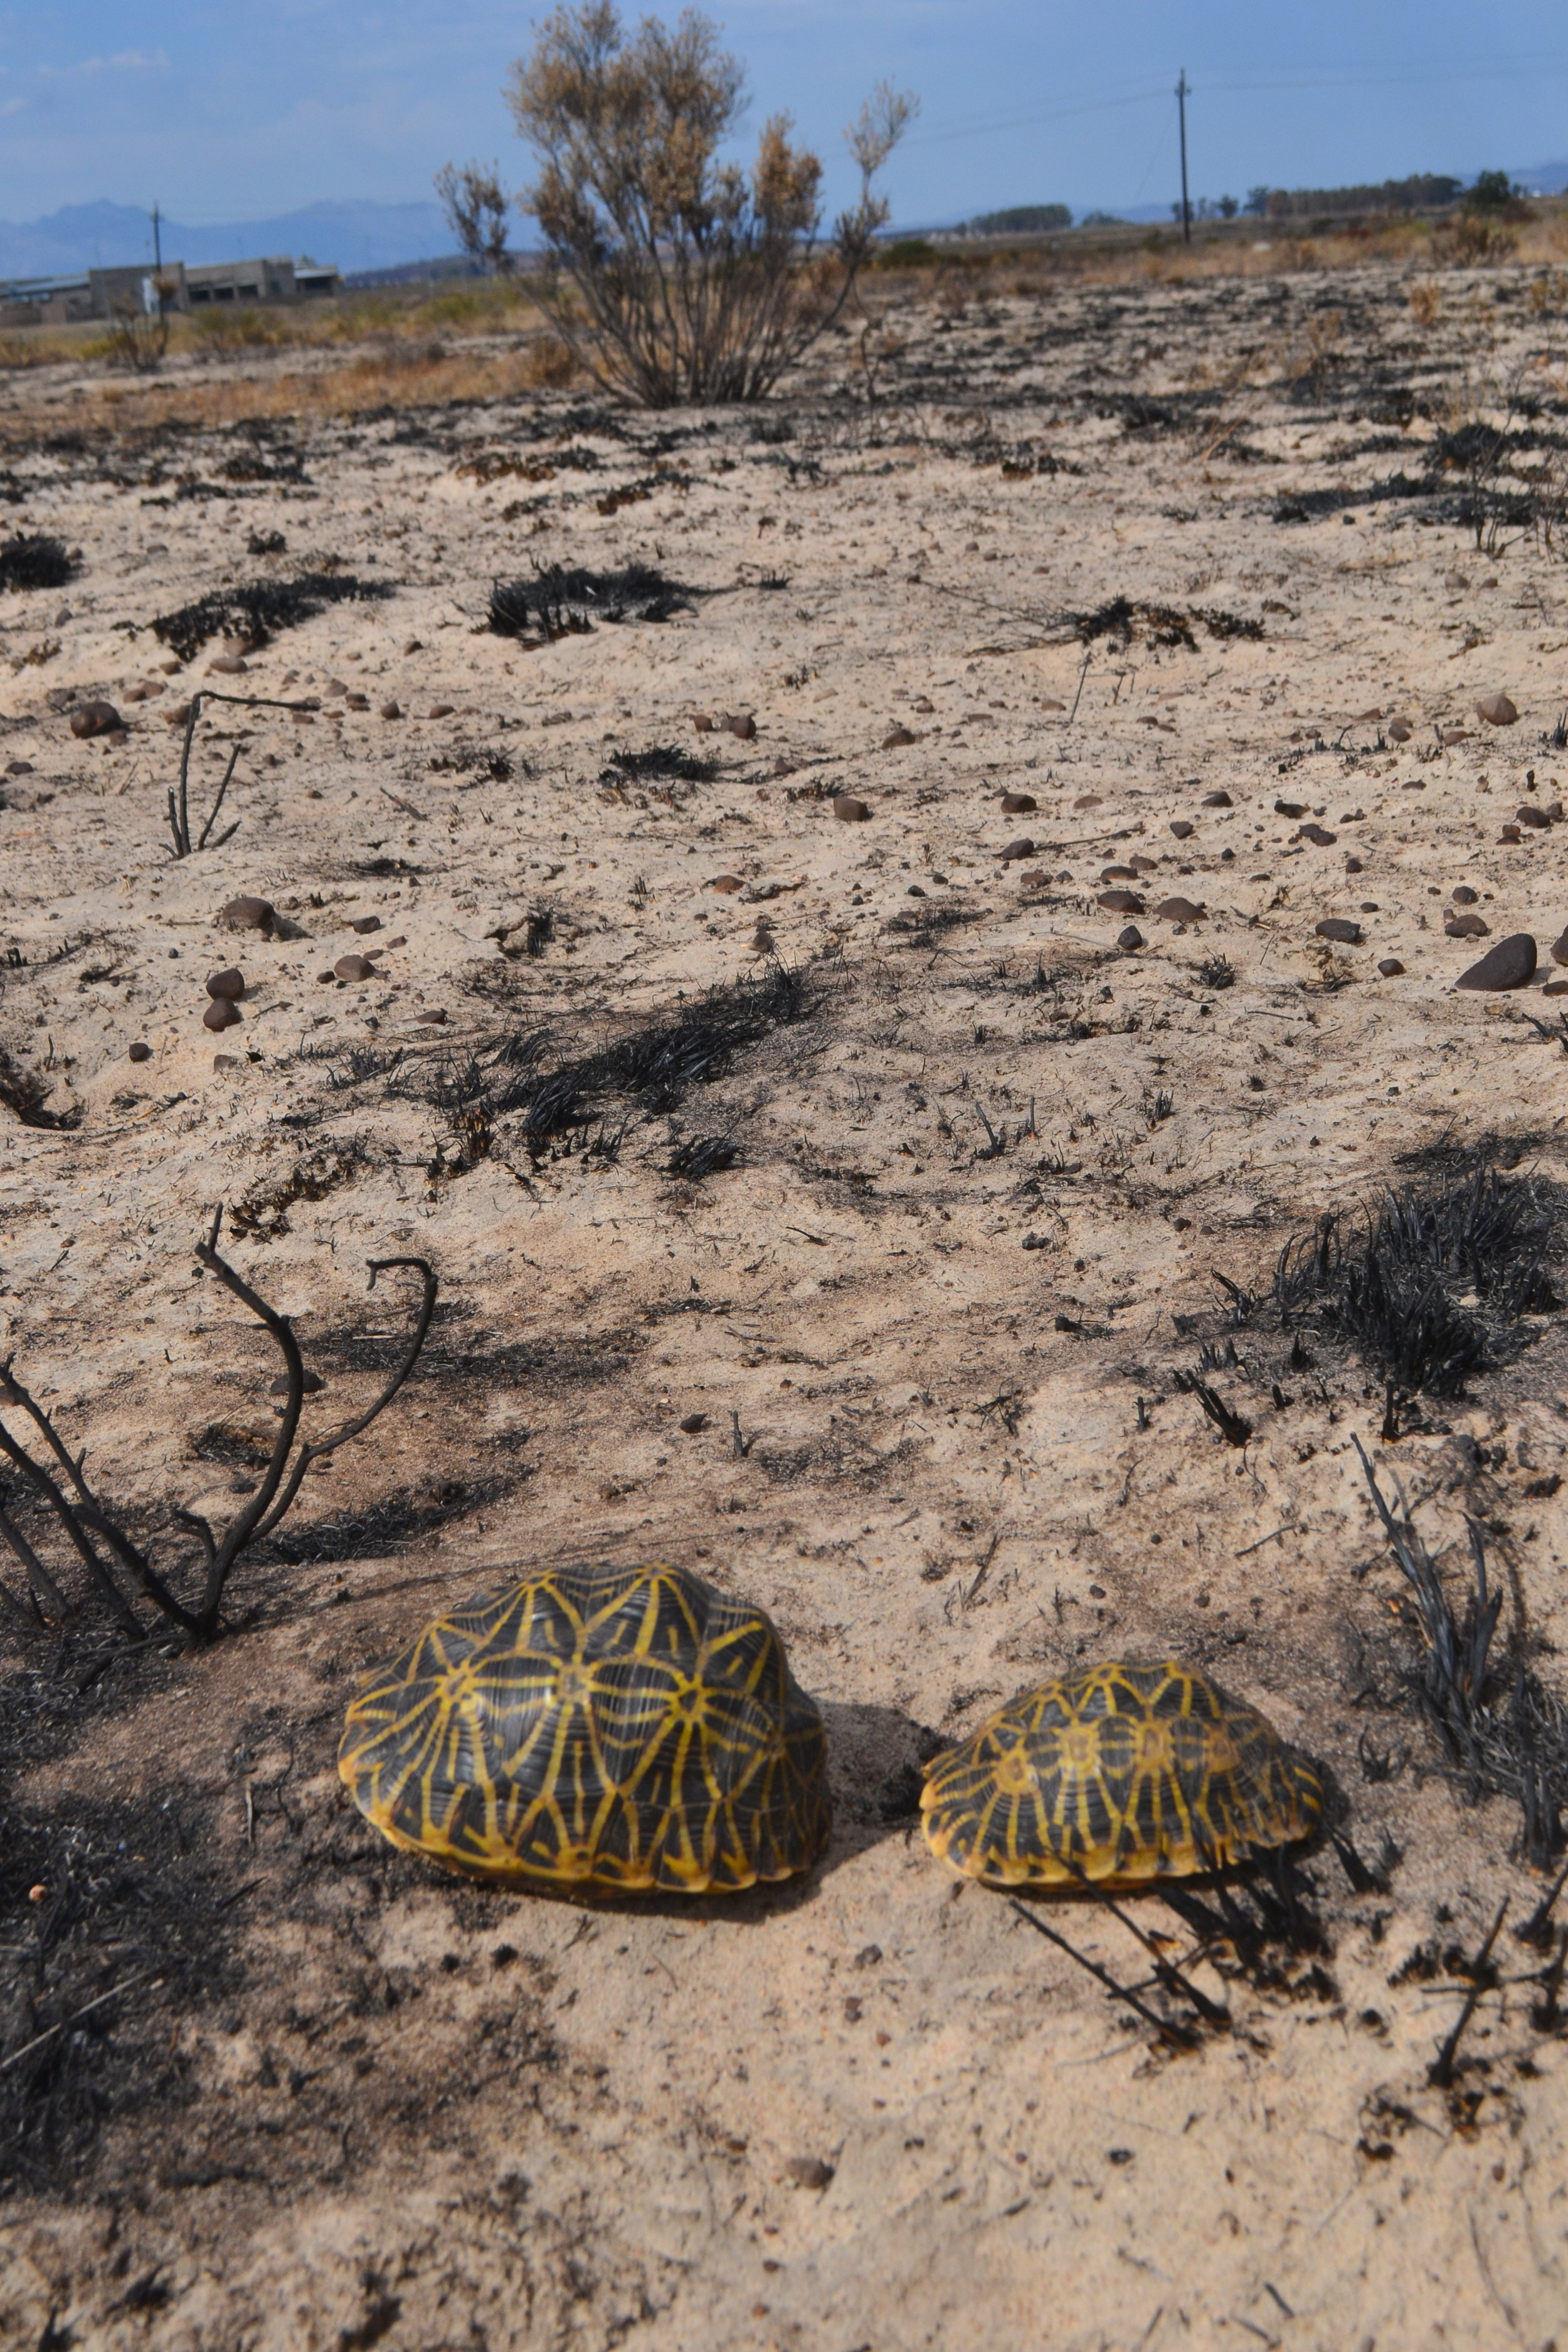 Tortoise survivors on burn in courtship 6 day after fire!